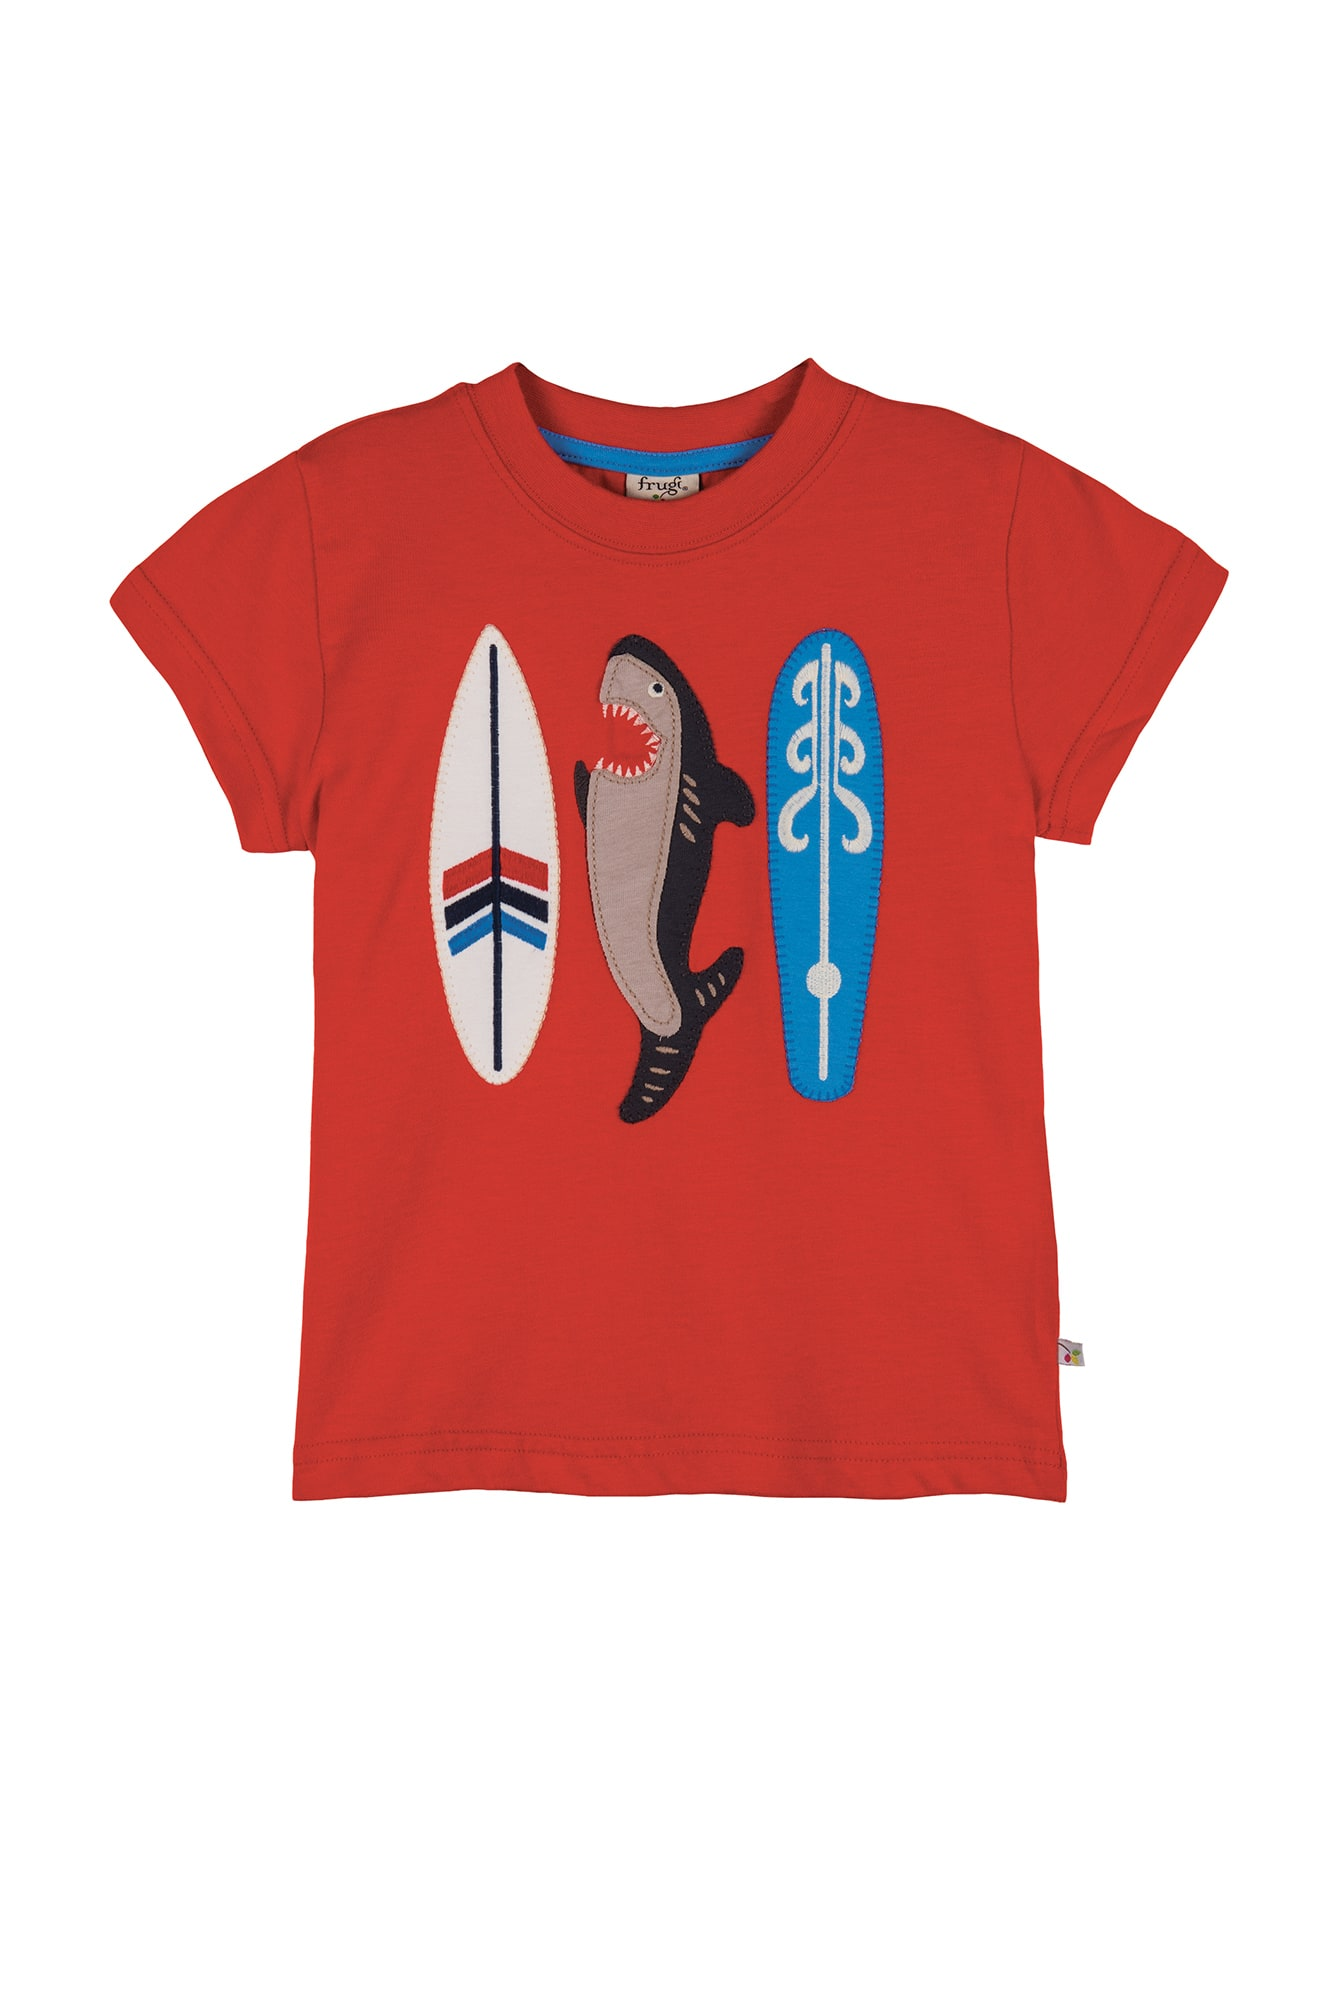 Beach applique t shirt tomato shark surfboards tops for Applique shirts for sale